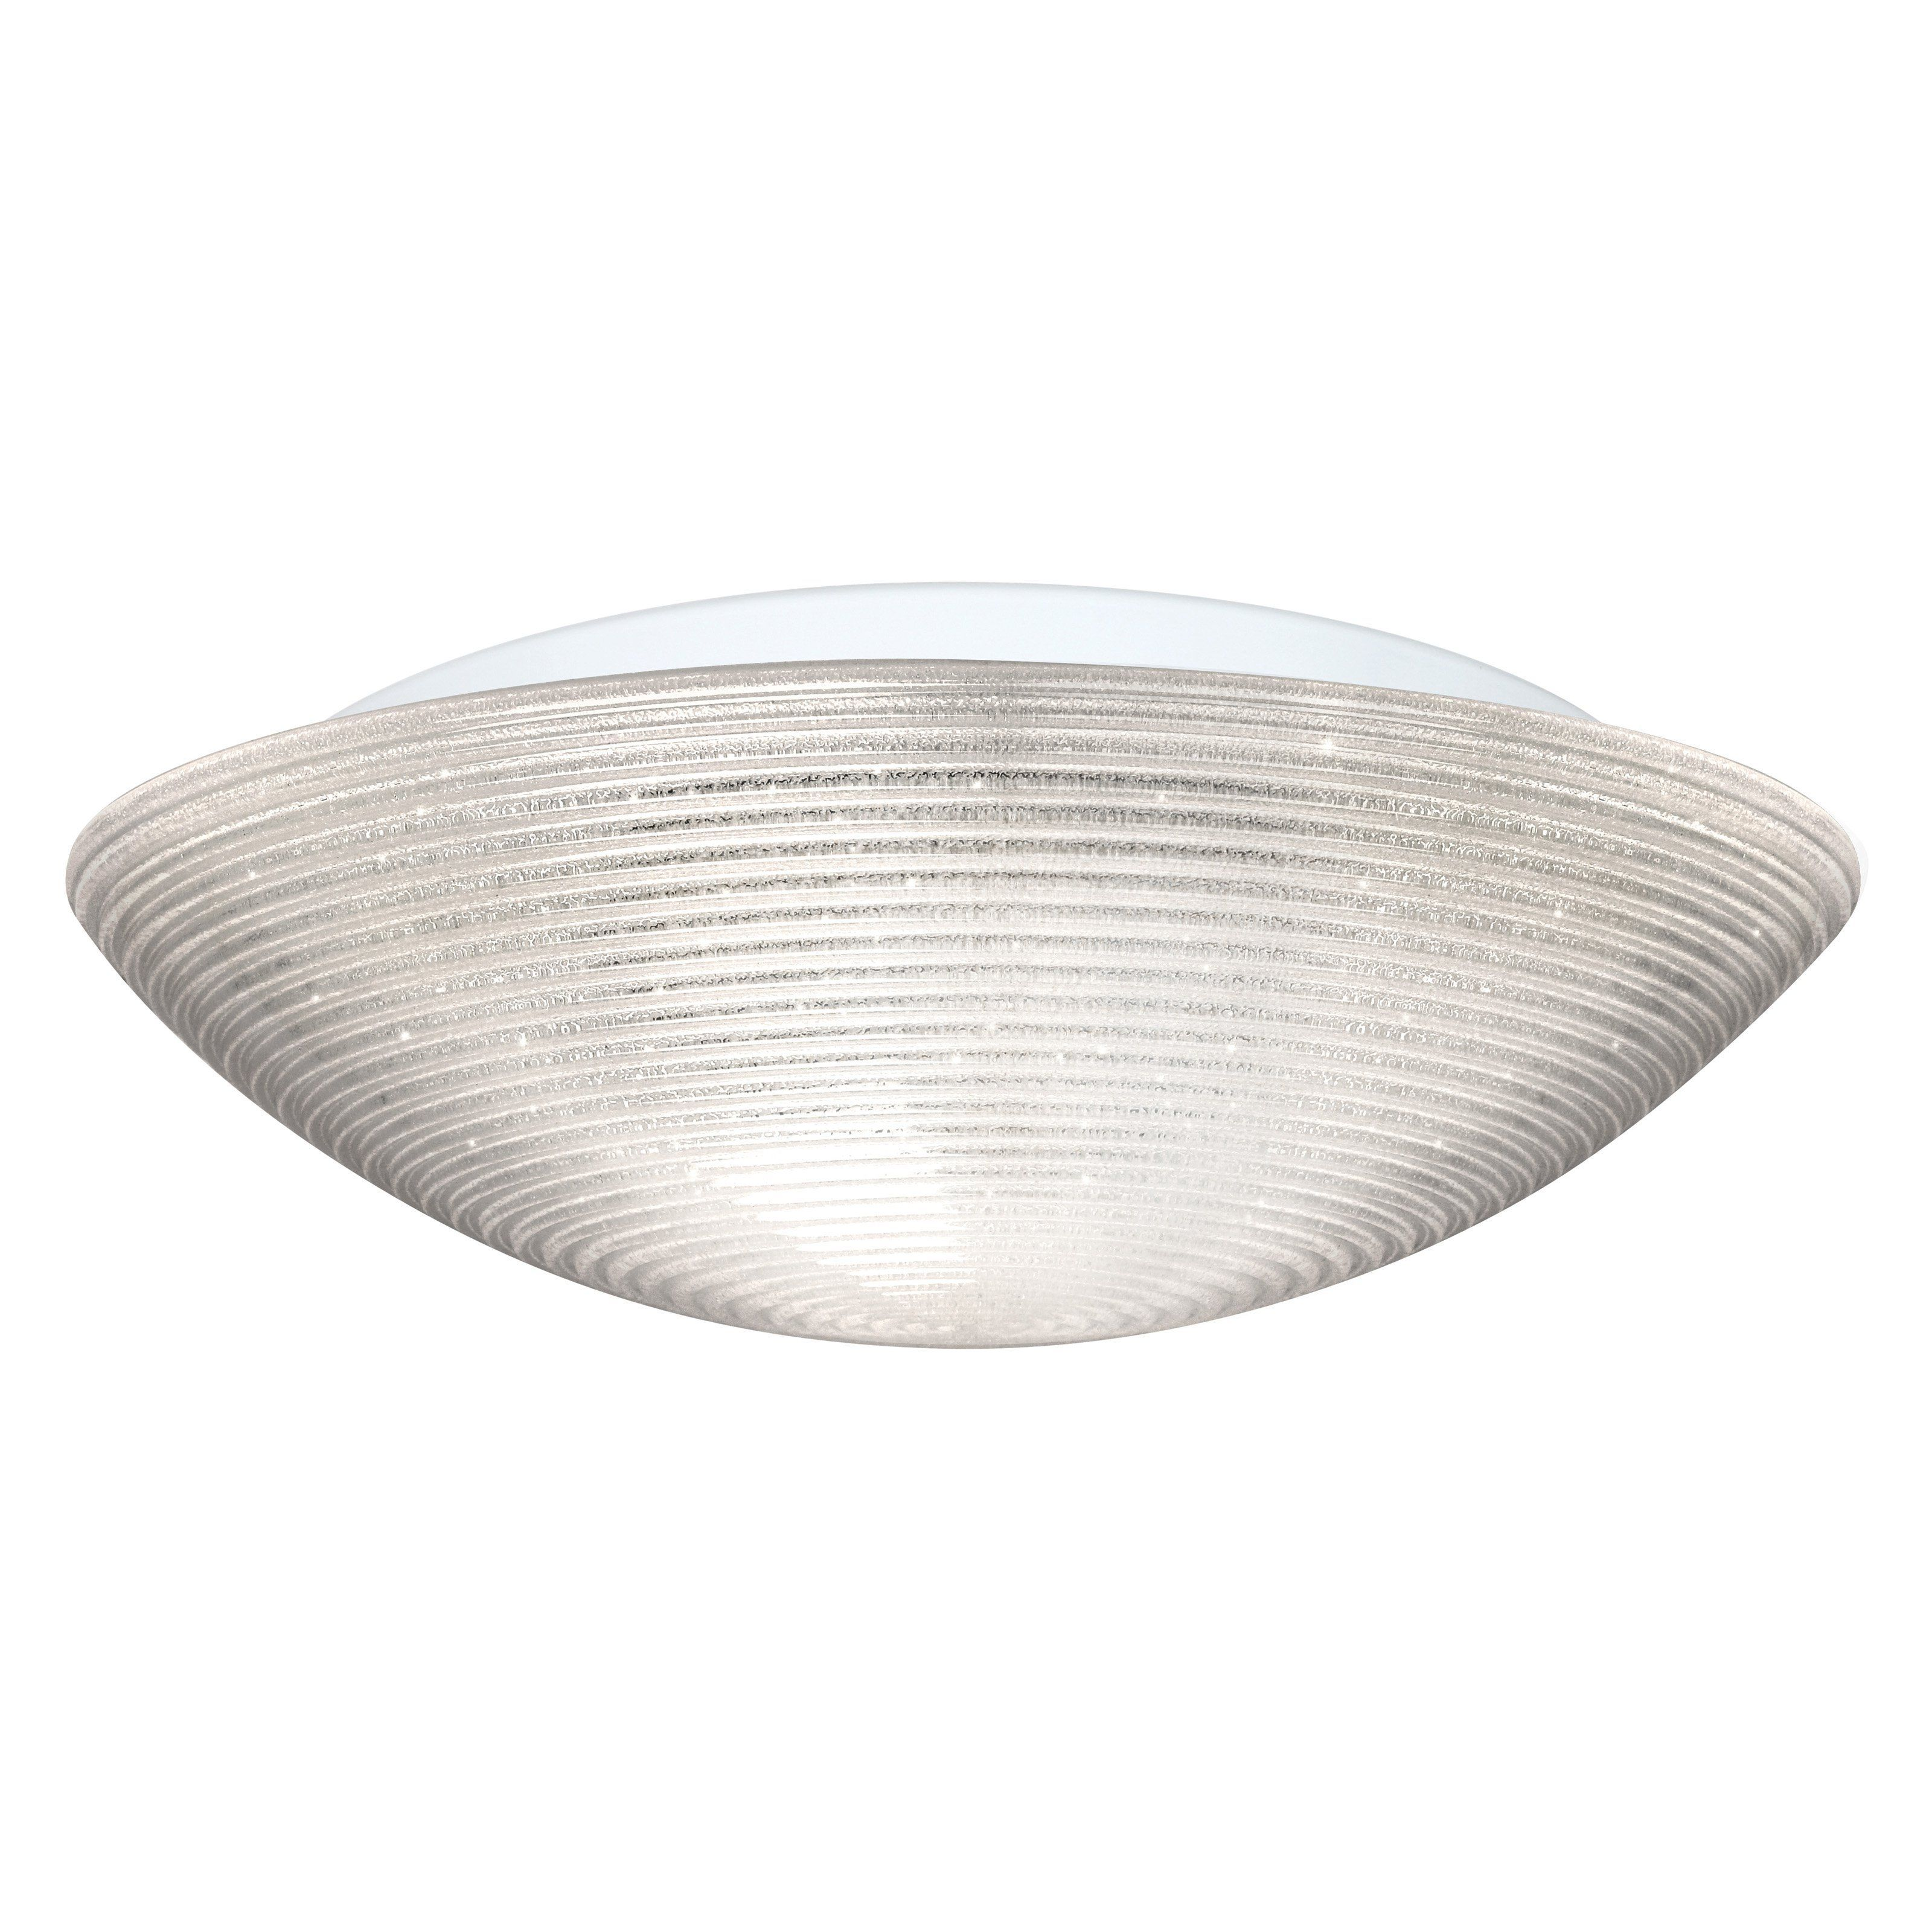 picture best lights light ceiling mount mounted ceilings flush kitchen led fixtures of